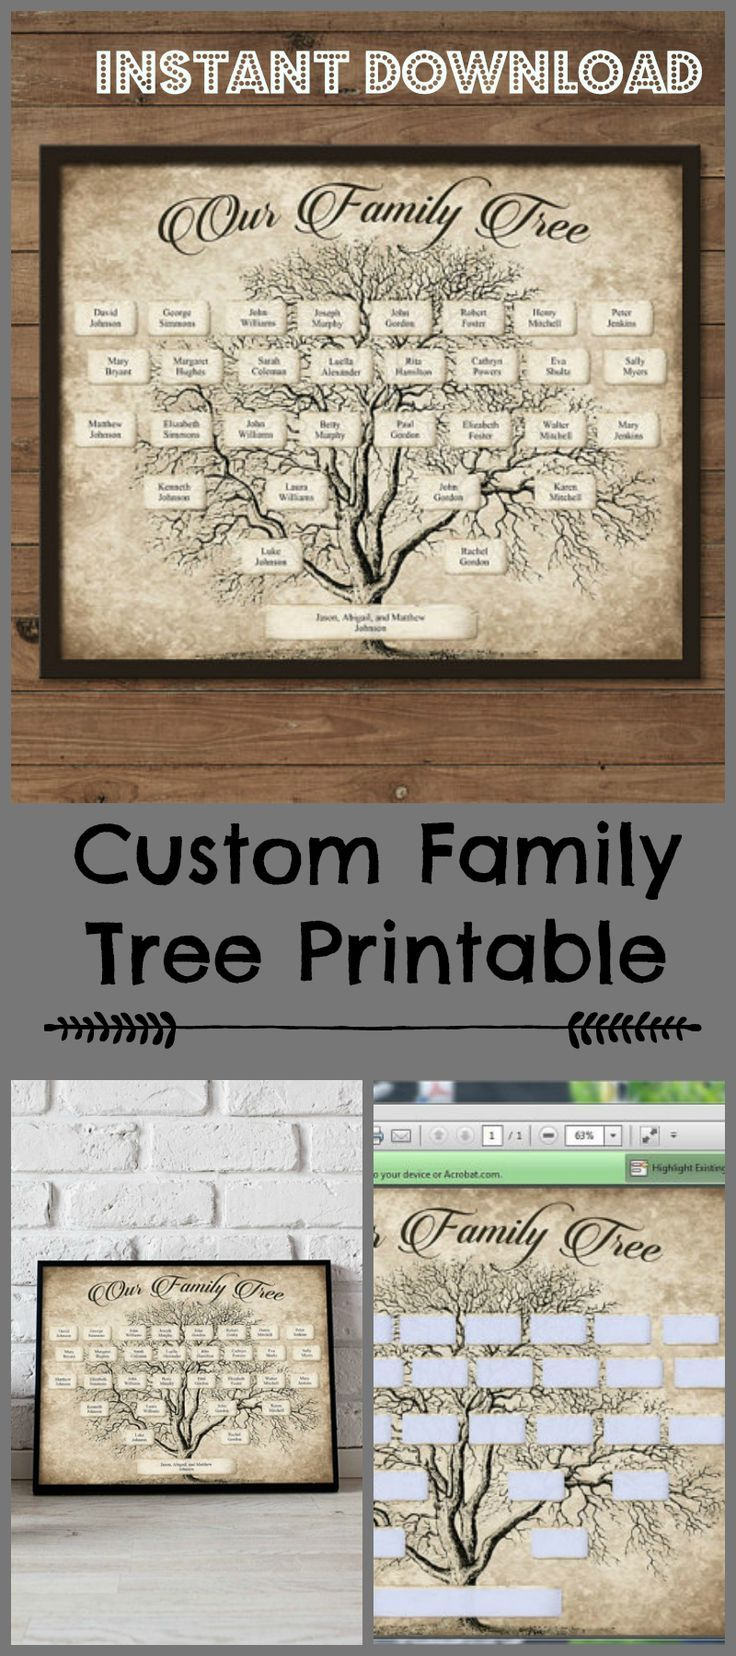 Custom Family Tree. Printable 5 Generation Template,